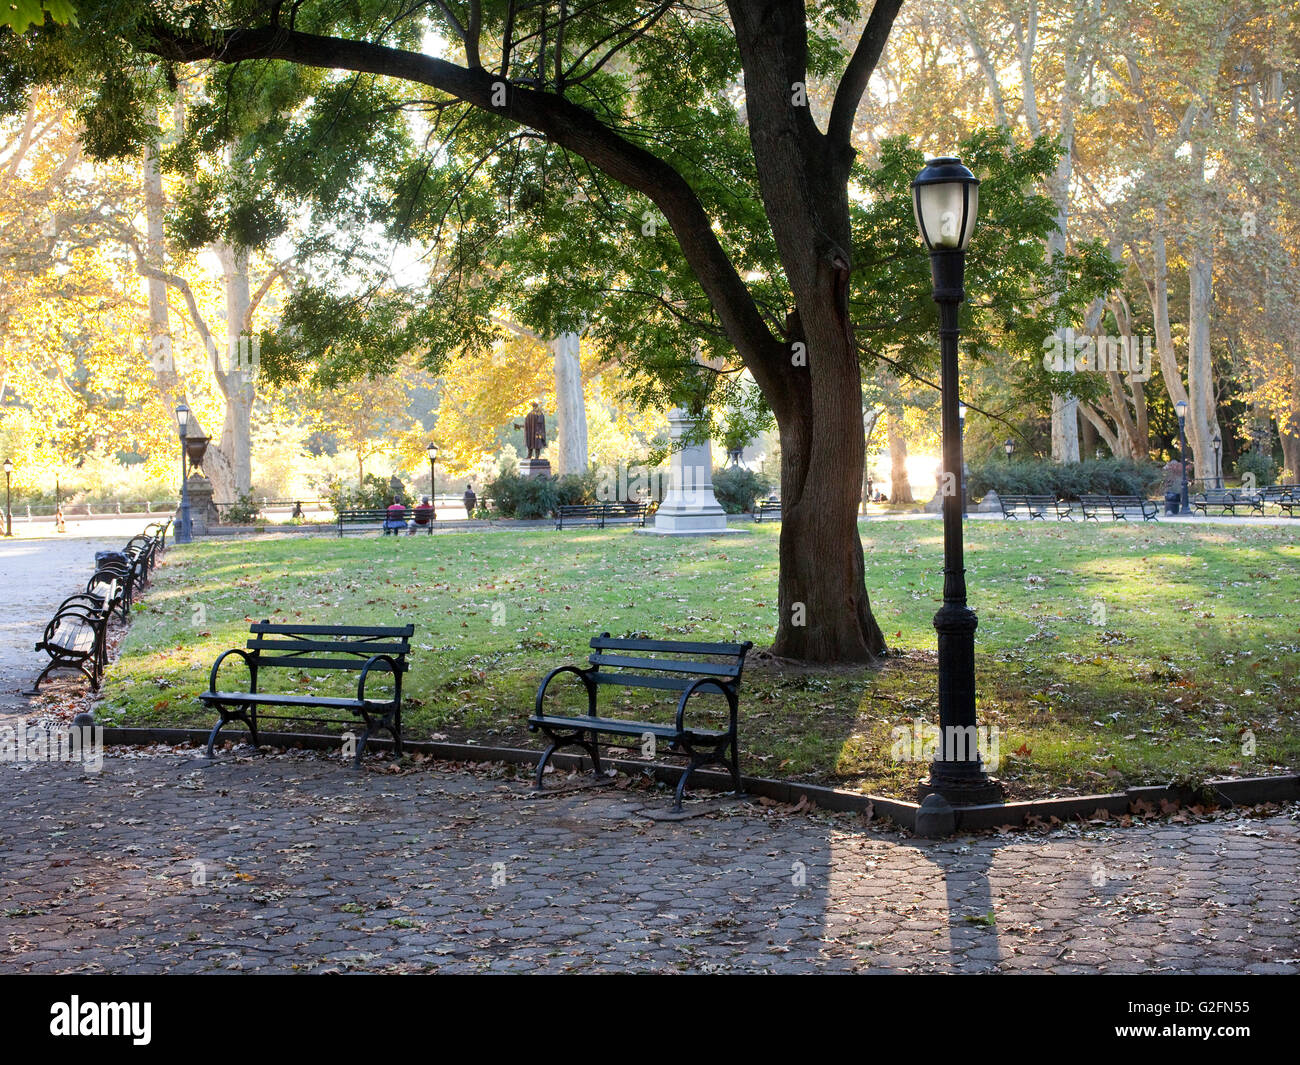 Prospect Park and benches - Stock Image